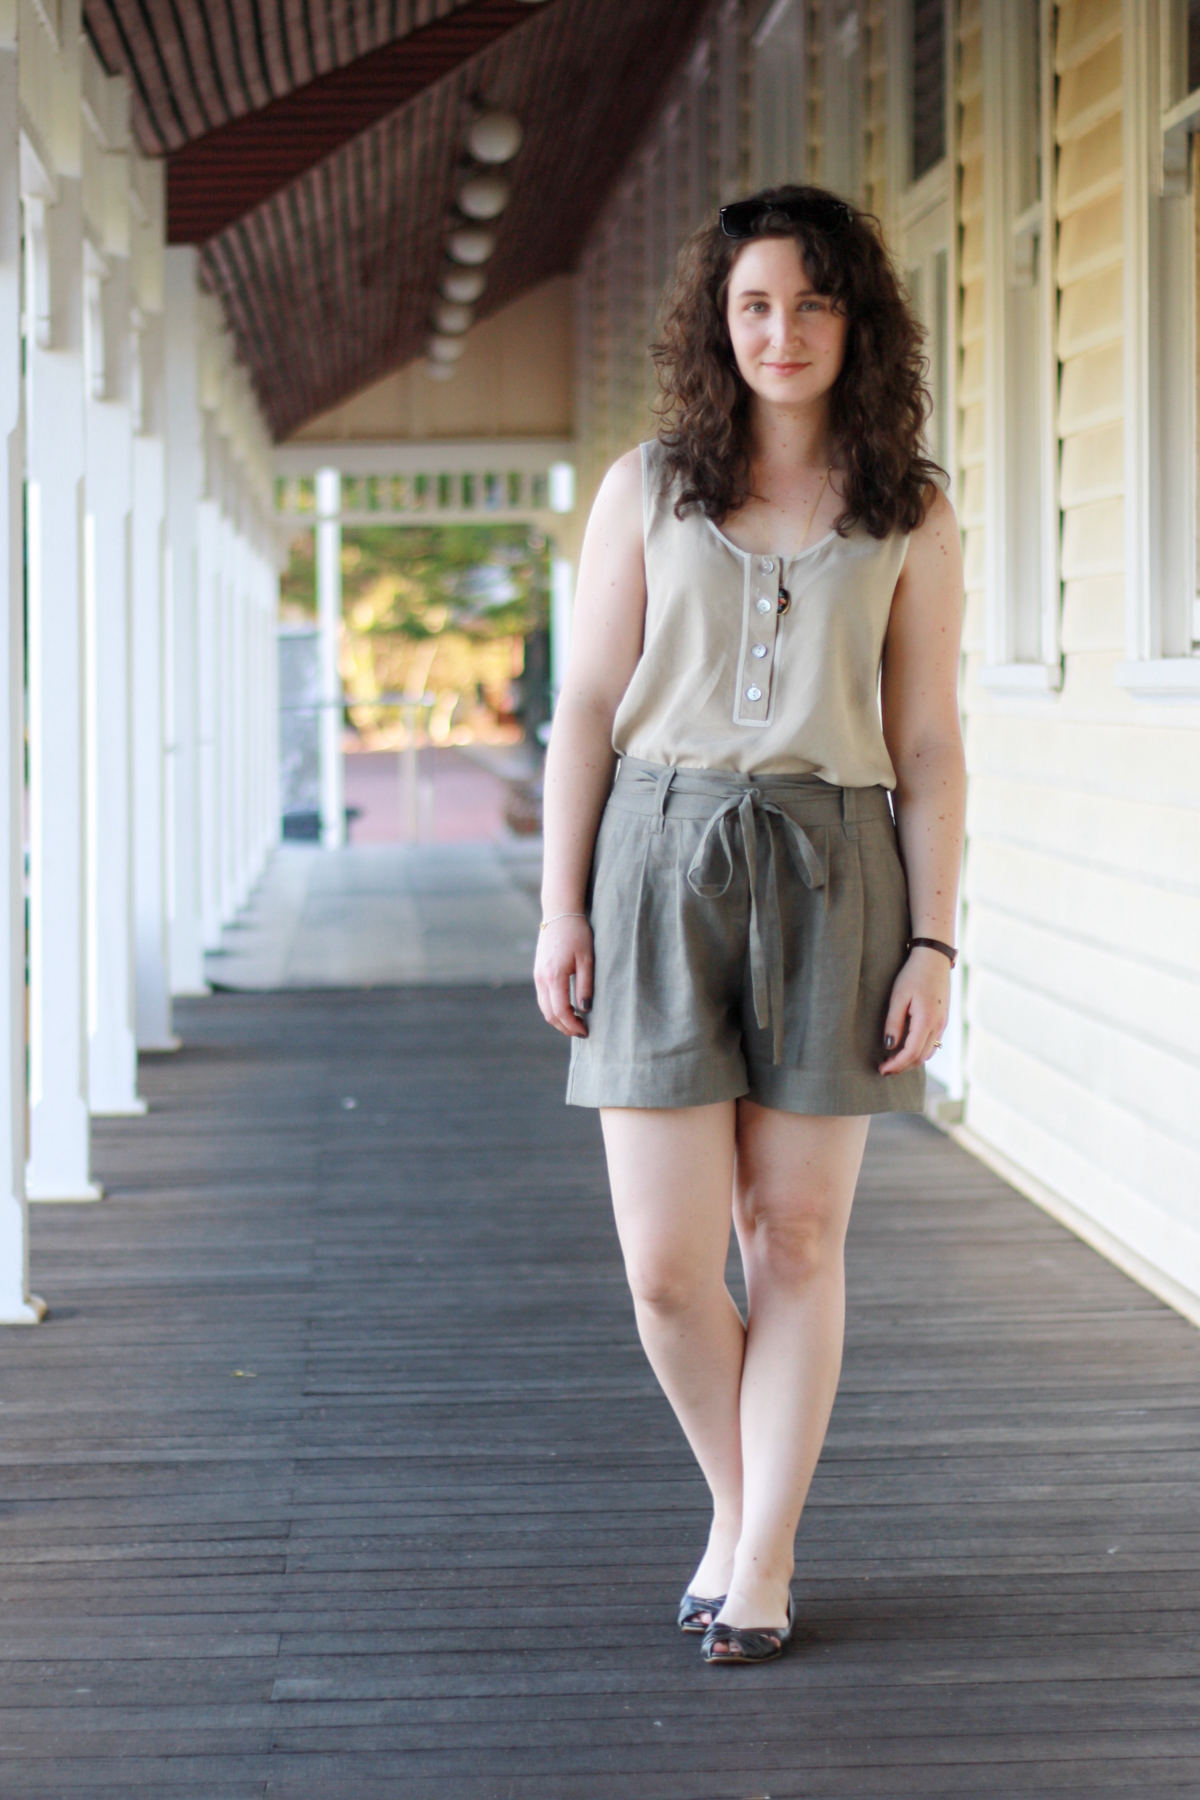 10 most worn makes in 10 years of blogging //Megan Nielsen Eucalypt tank top & Banksia blouse mashup